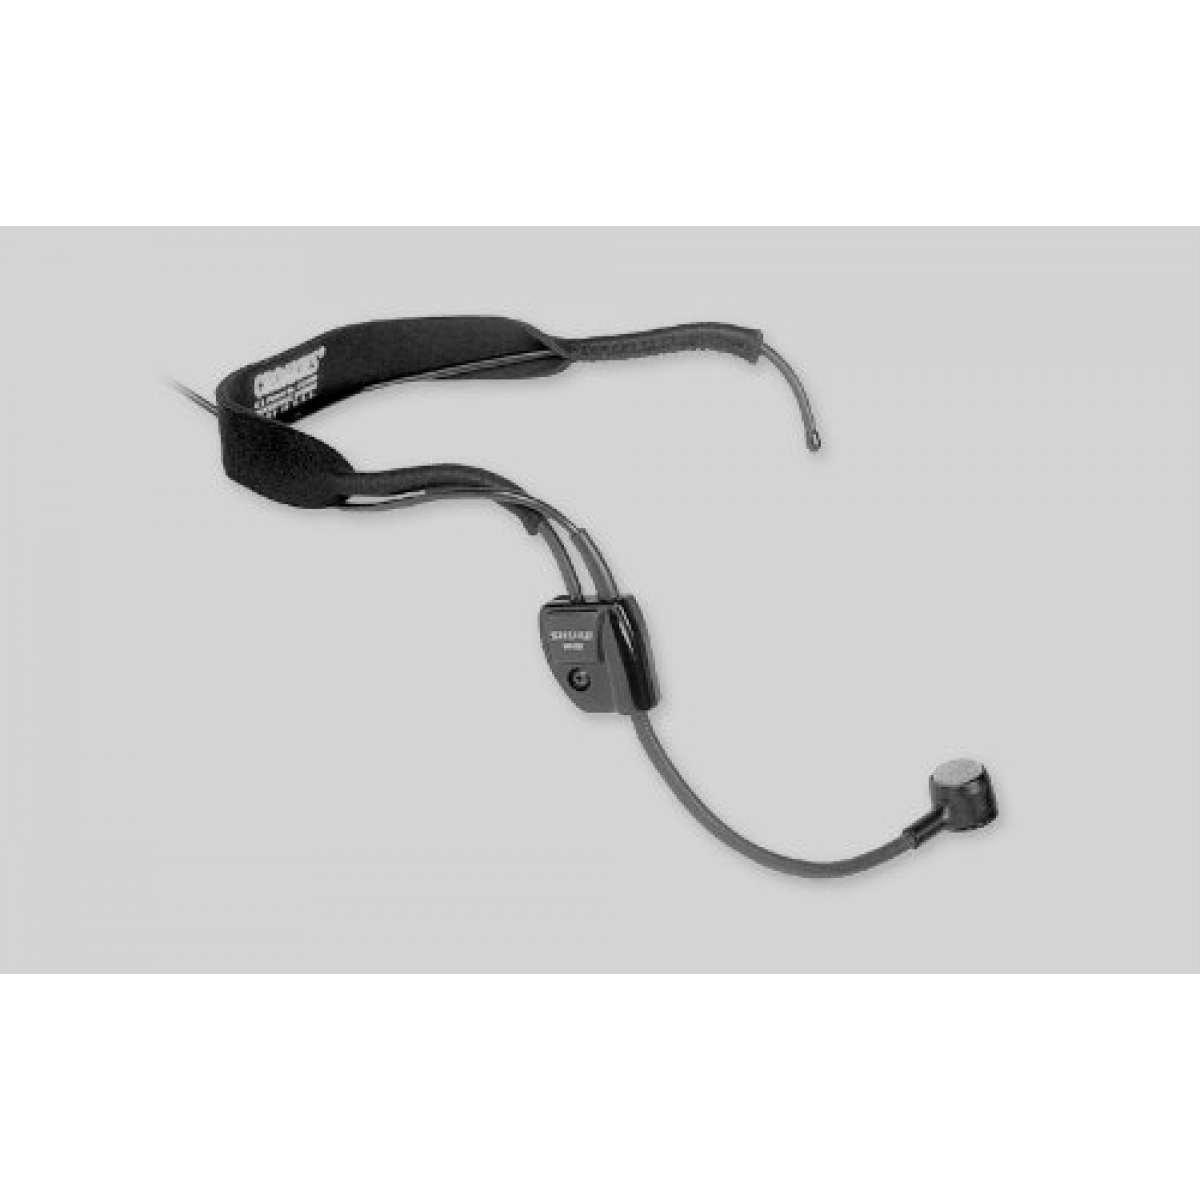 shure wh20 headset microphone at promenade music. Black Bedroom Furniture Sets. Home Design Ideas